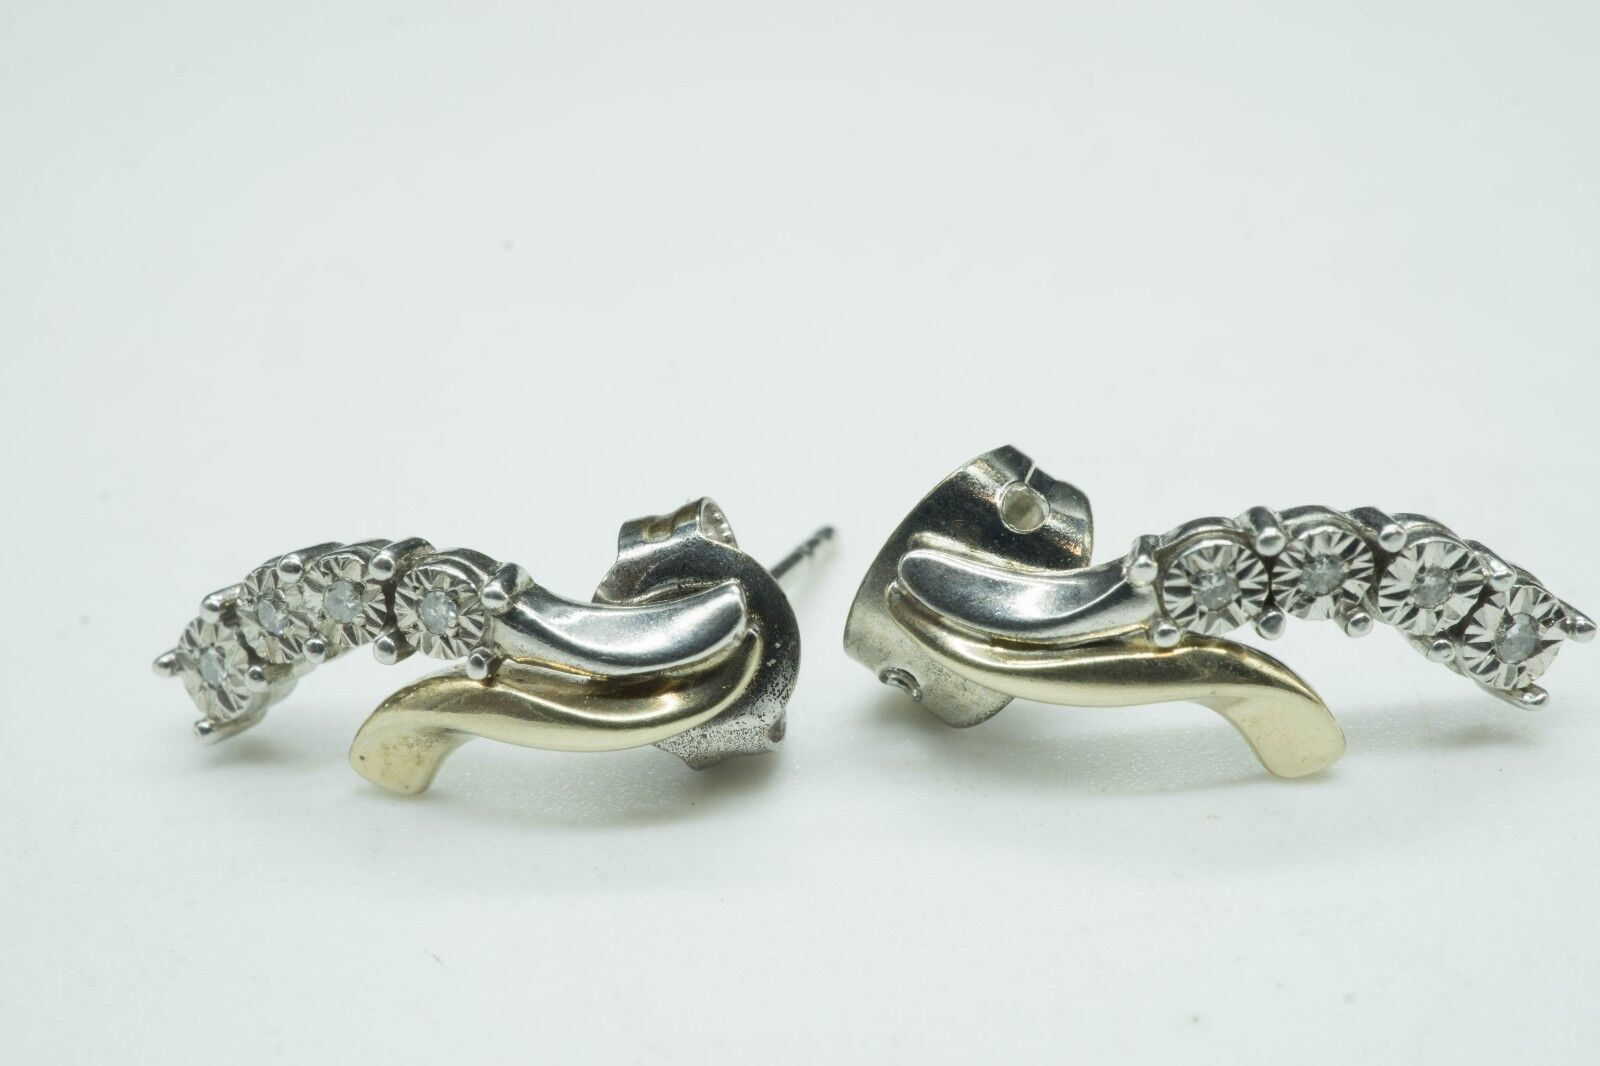 Elegant / Diamonds / 10K Sterling / Pierced Stud Earrings / Size 5/8 1.5g  - $69.99